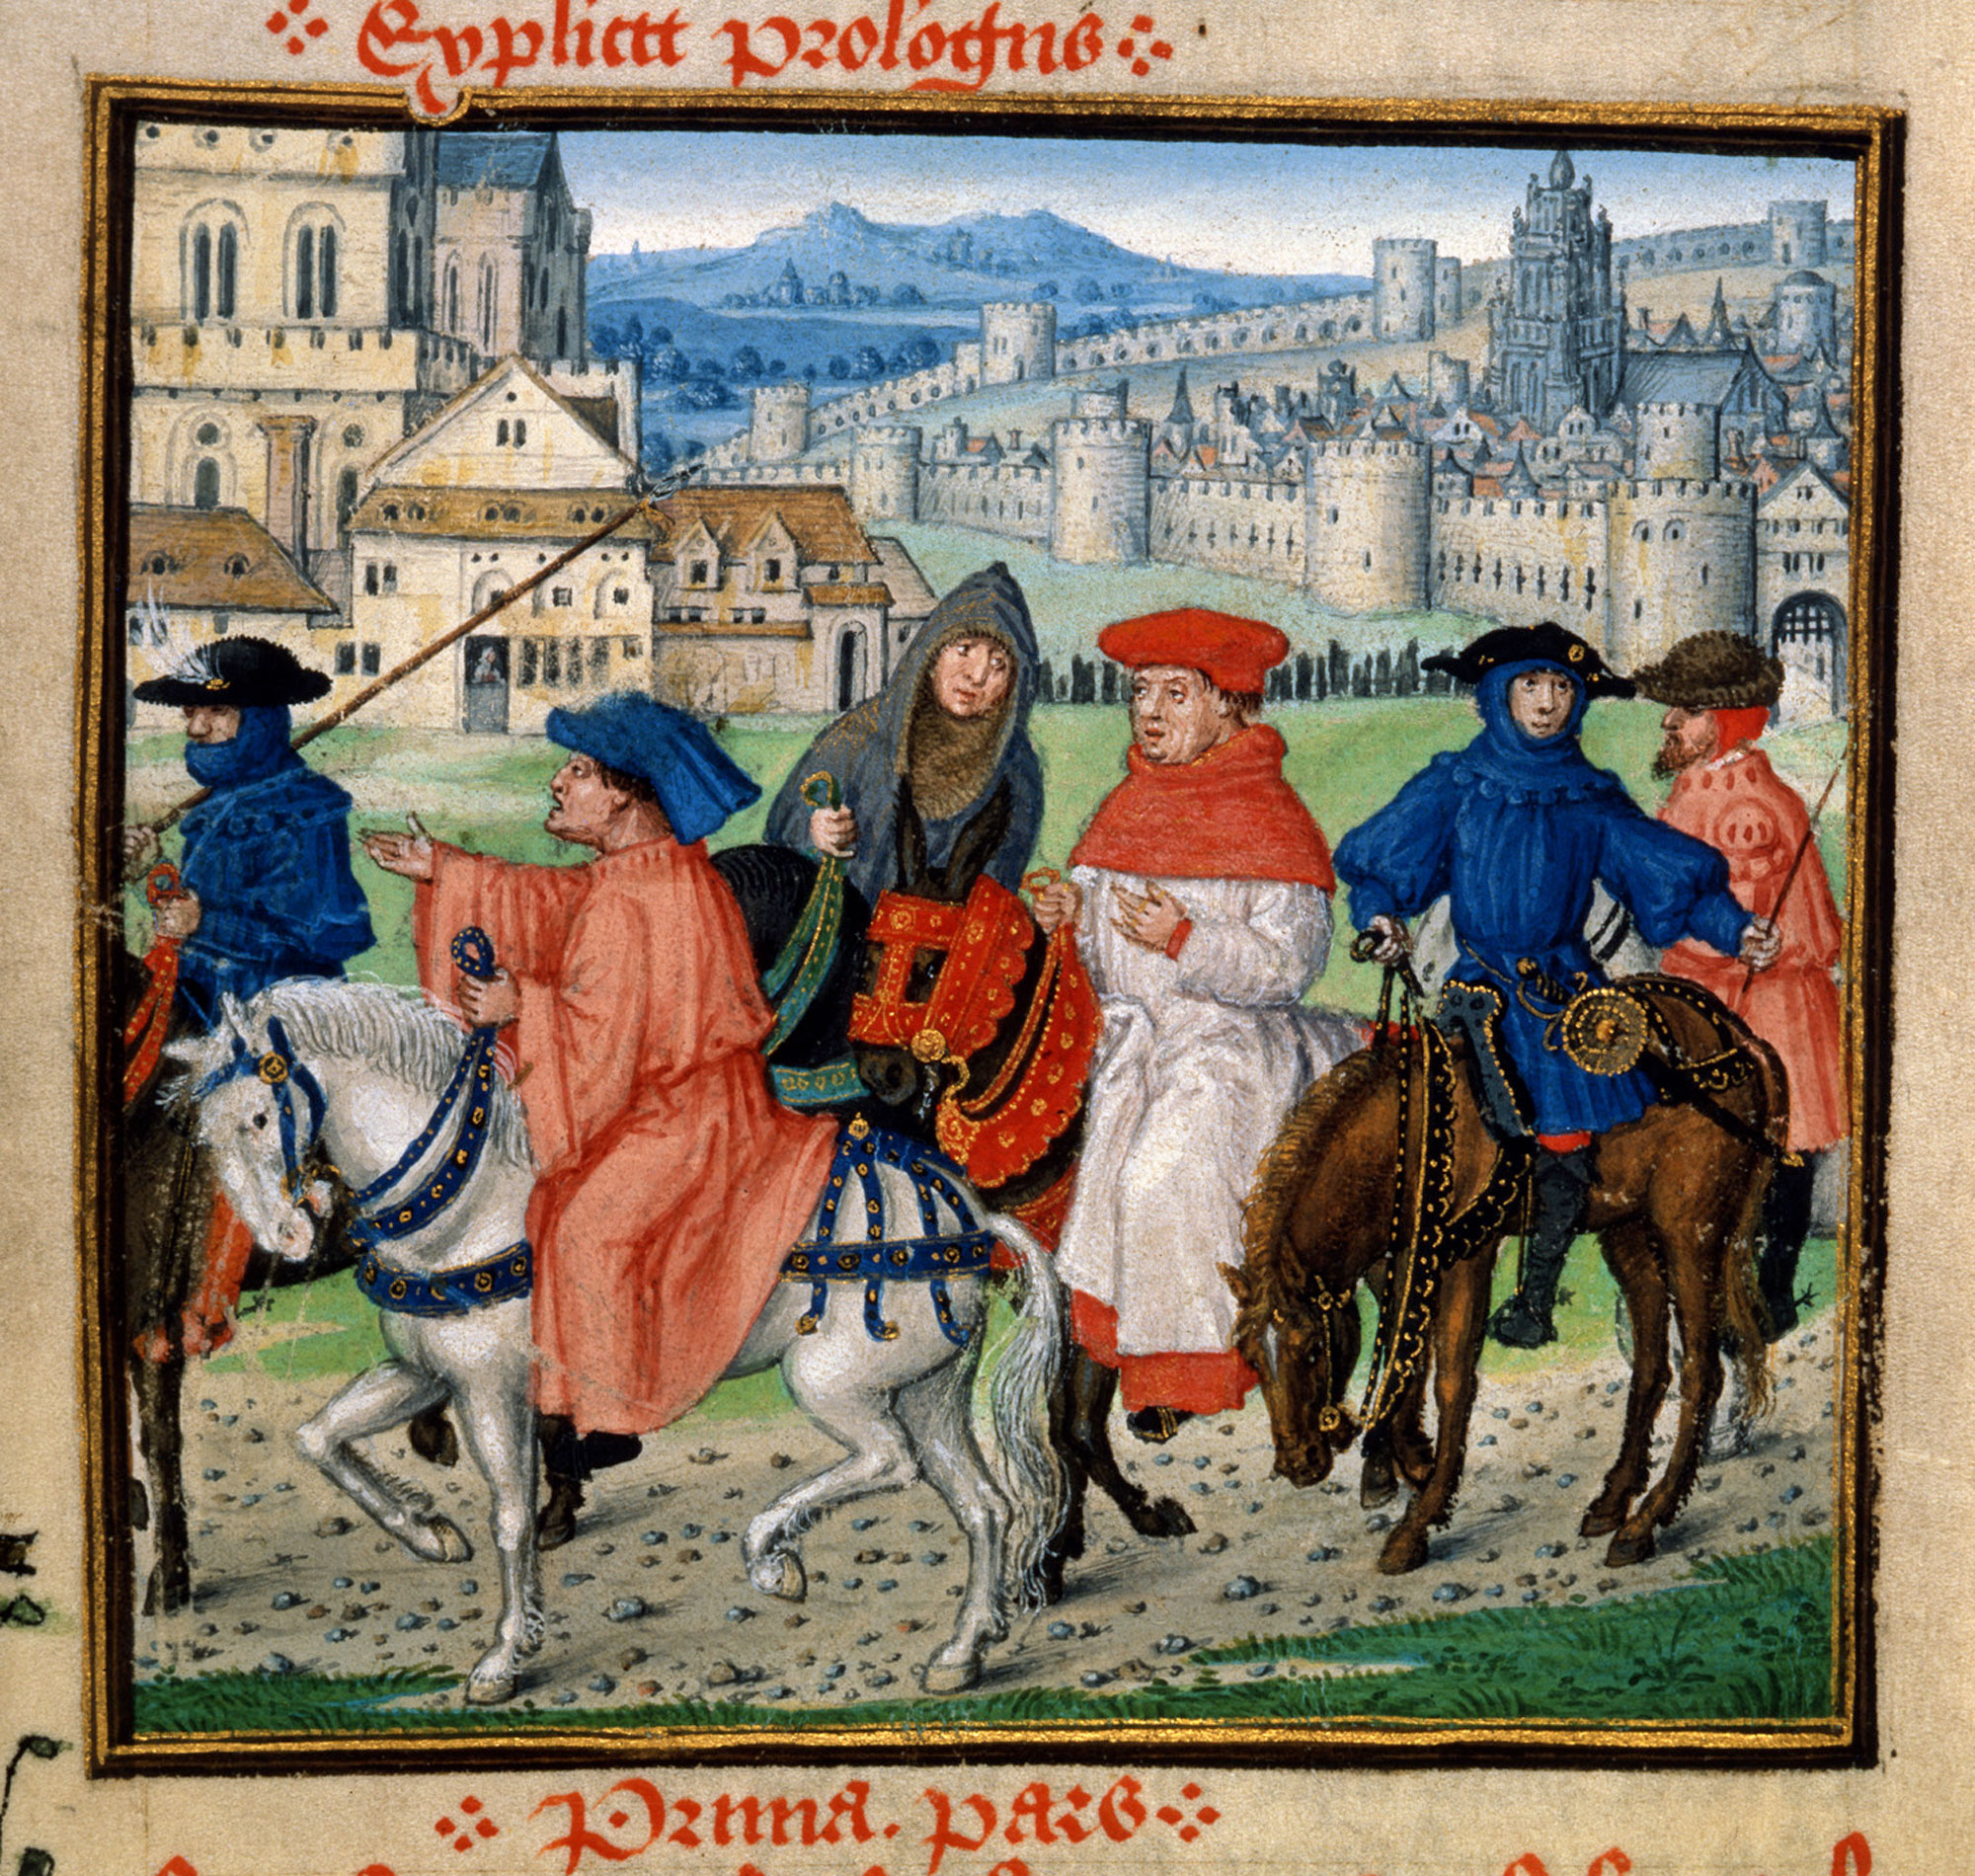 Pilgrims leaving Canterbury, taken from Lydgate's Siege of Thebes